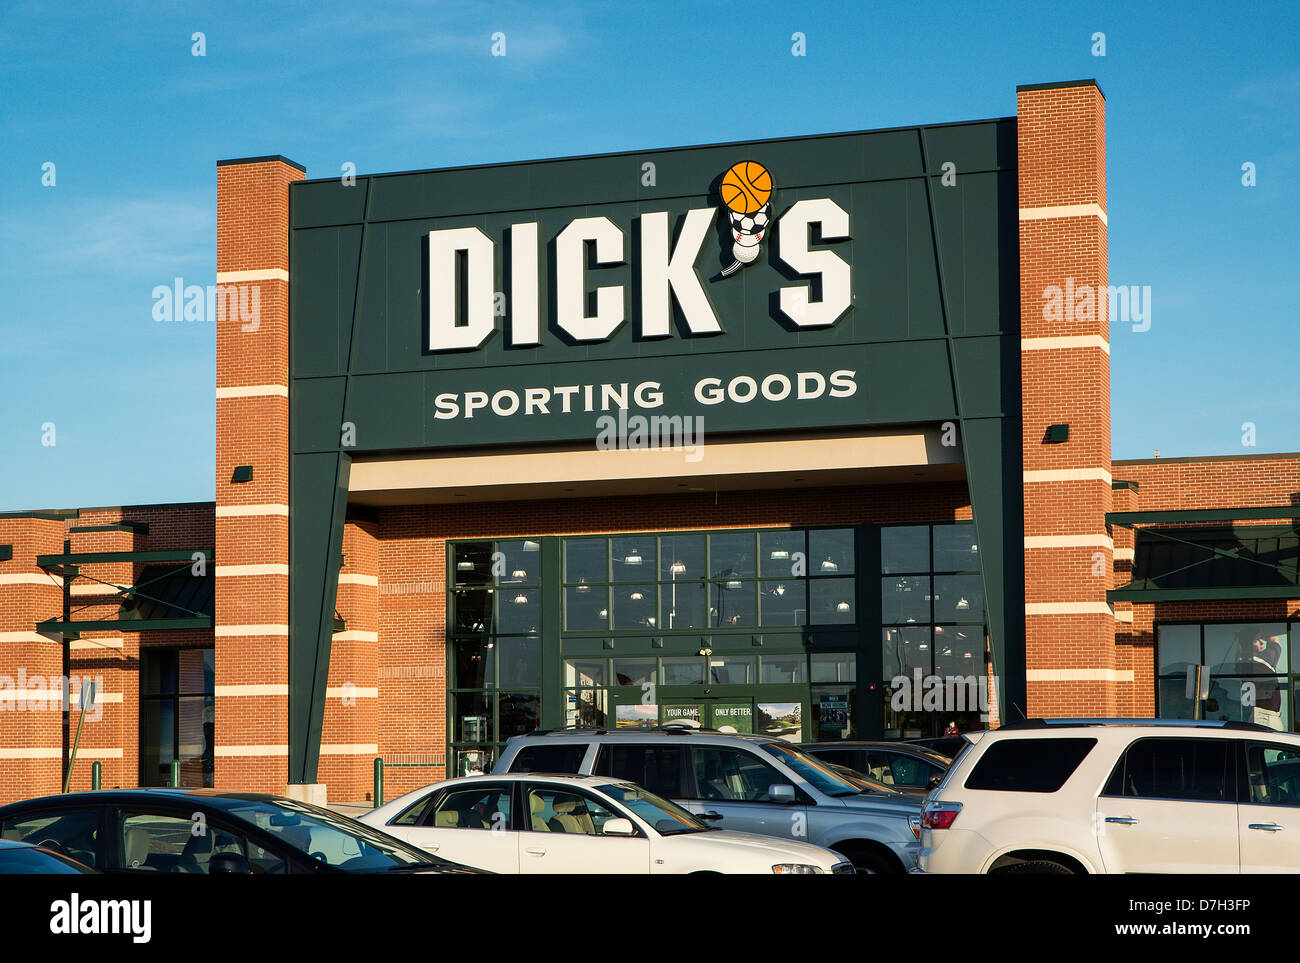 Dick's Sporting Goods store, New Jersey, USA - Stock Image